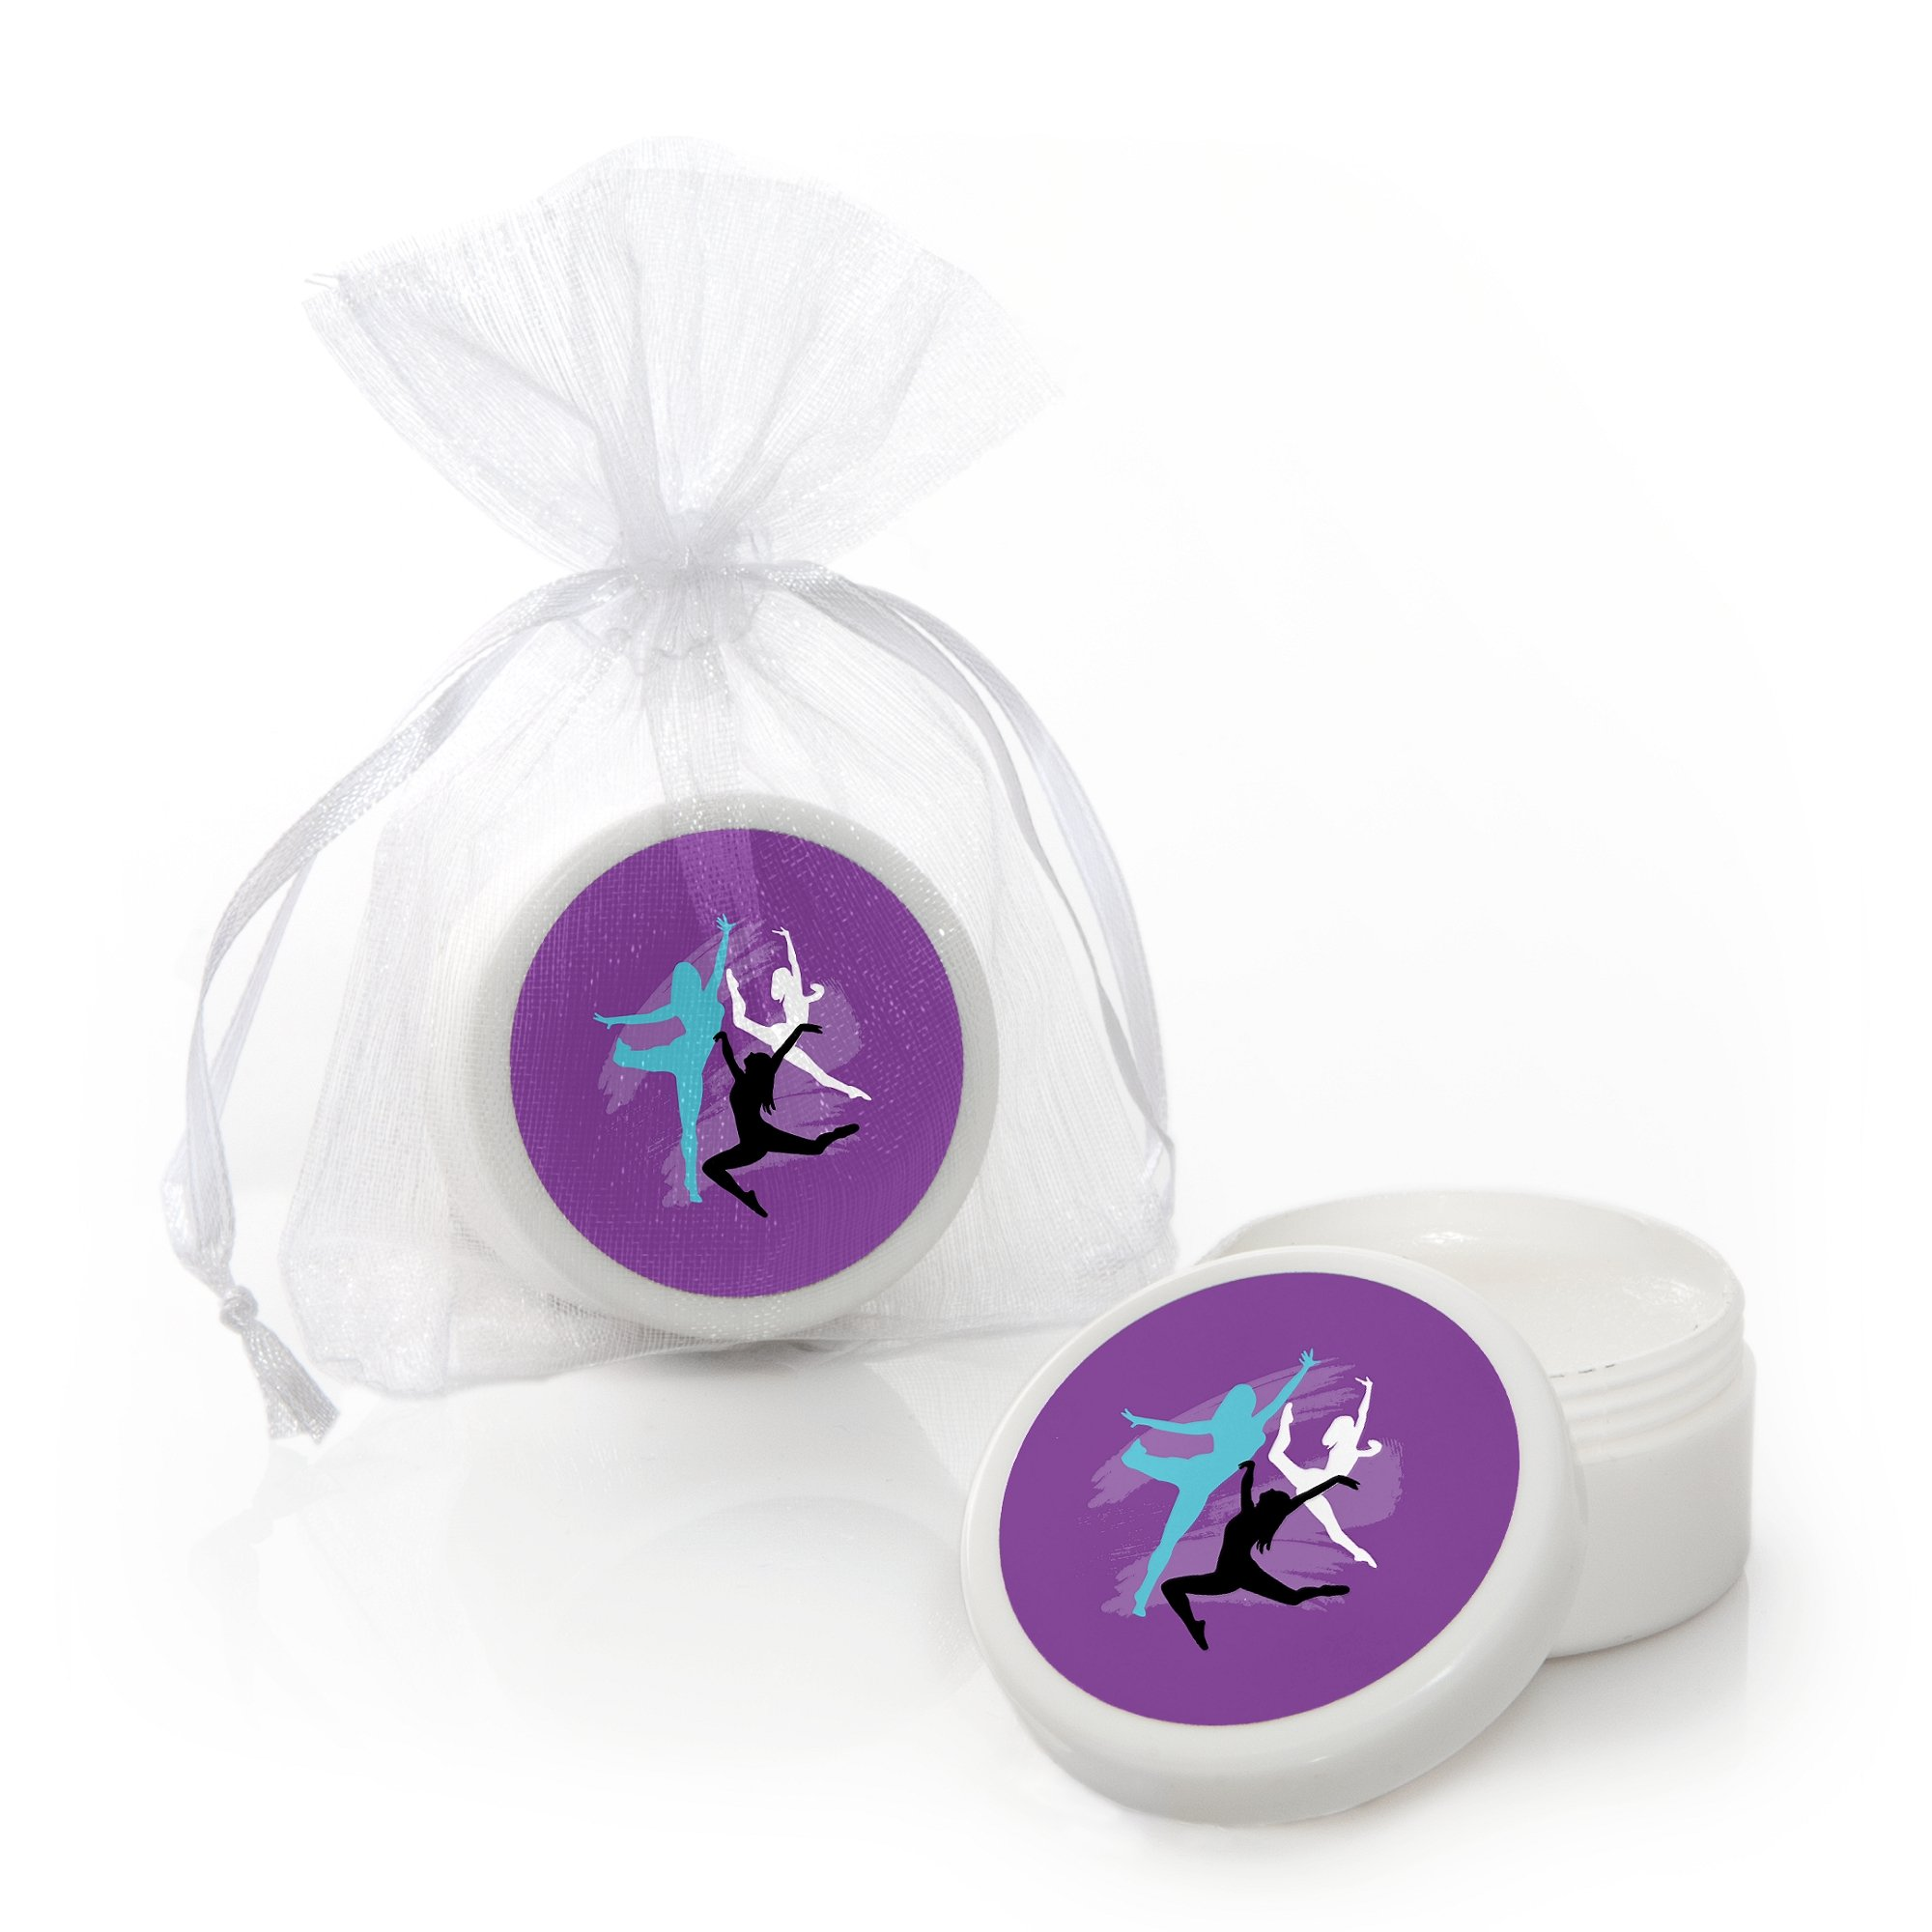 Big Dot of Happiness Must Dance to the Beat - Dance - Lip Balm Dance Party or Birthday Party Favors - Set of 12